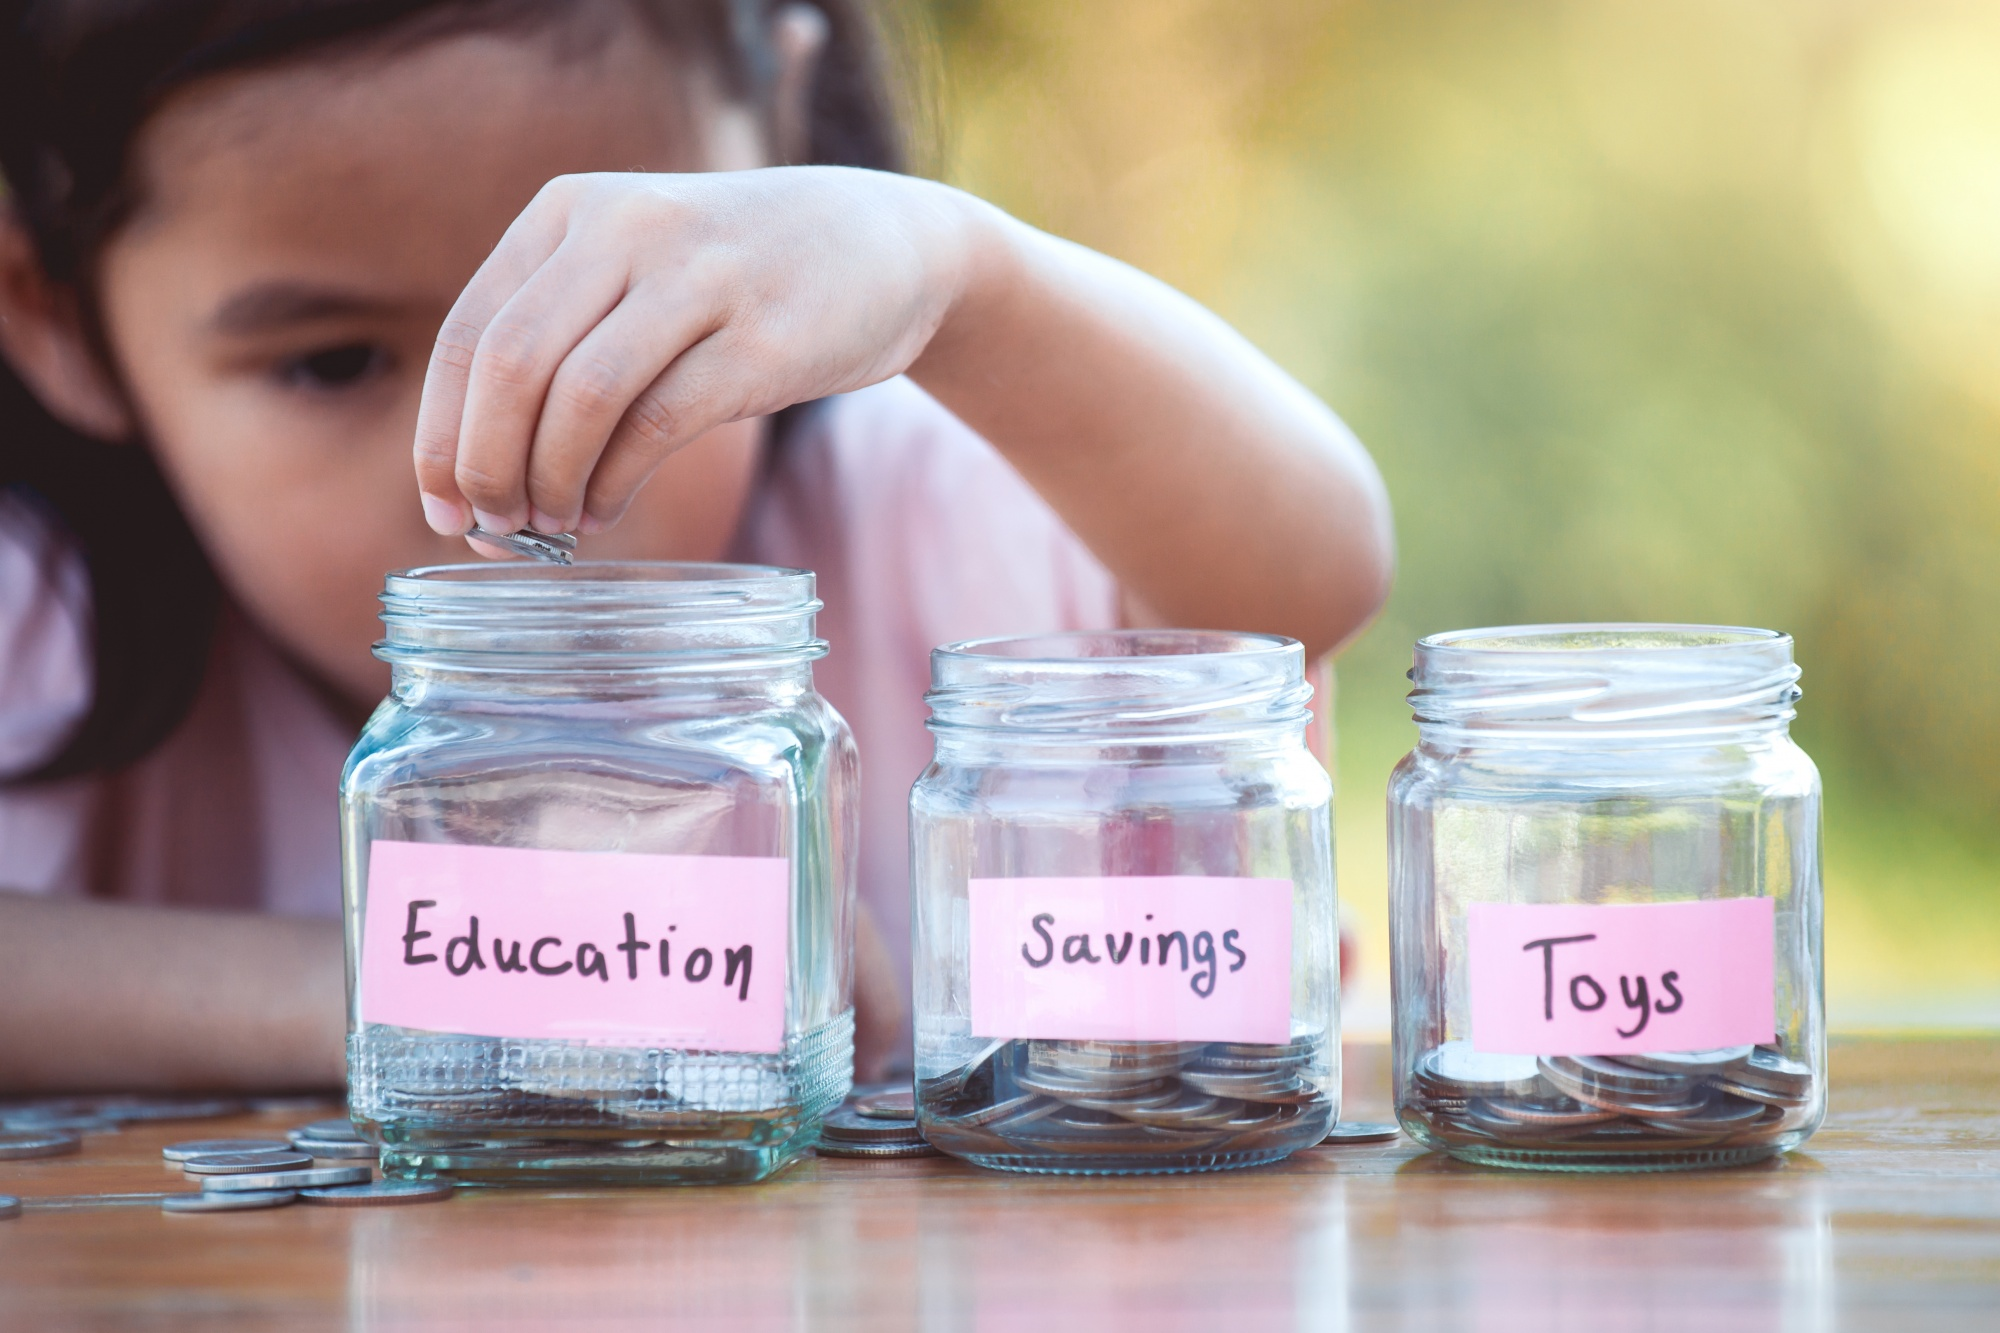 Teaching kids about money, little girl dividing coins into different savings jars